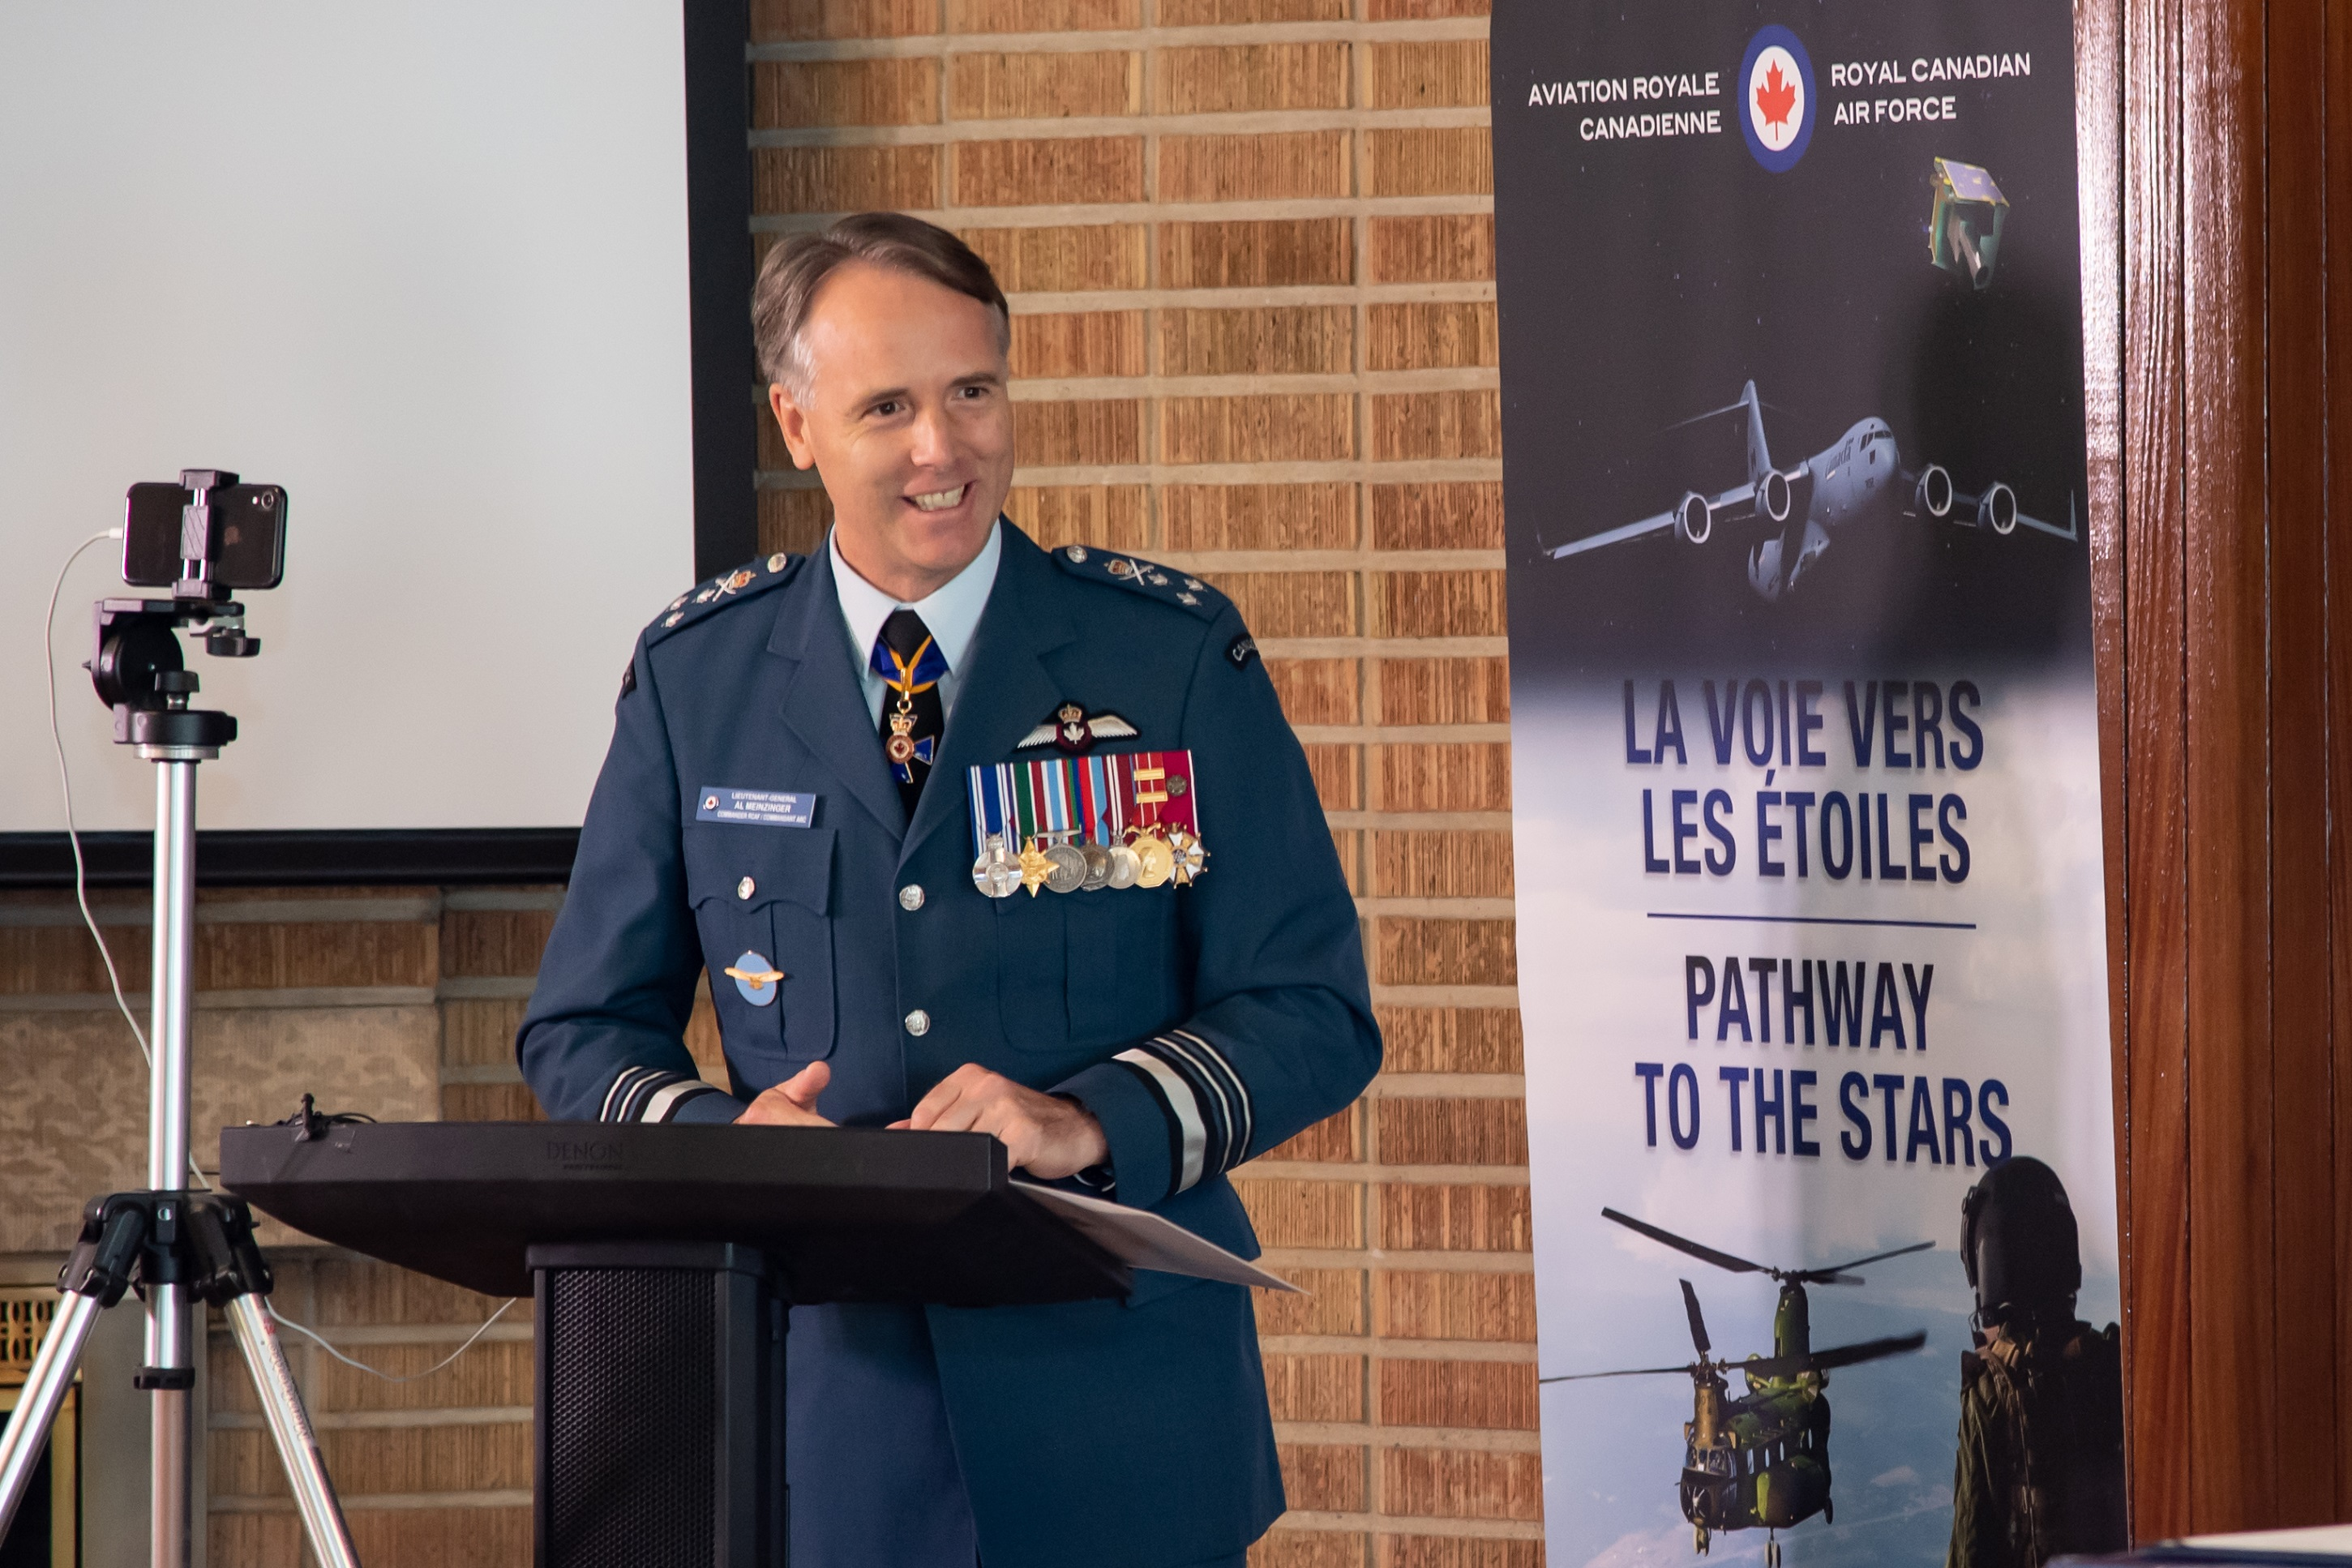 Reviewing Officer, Lieutenant-General Meinzinger, Commander Royal Canadian Air Force, addresses parade spectators and virtual attendees during the 1 Canadian Air Division change of command ceremony, July 6, 2020. PHOTO: Corporal Darryl Hepner